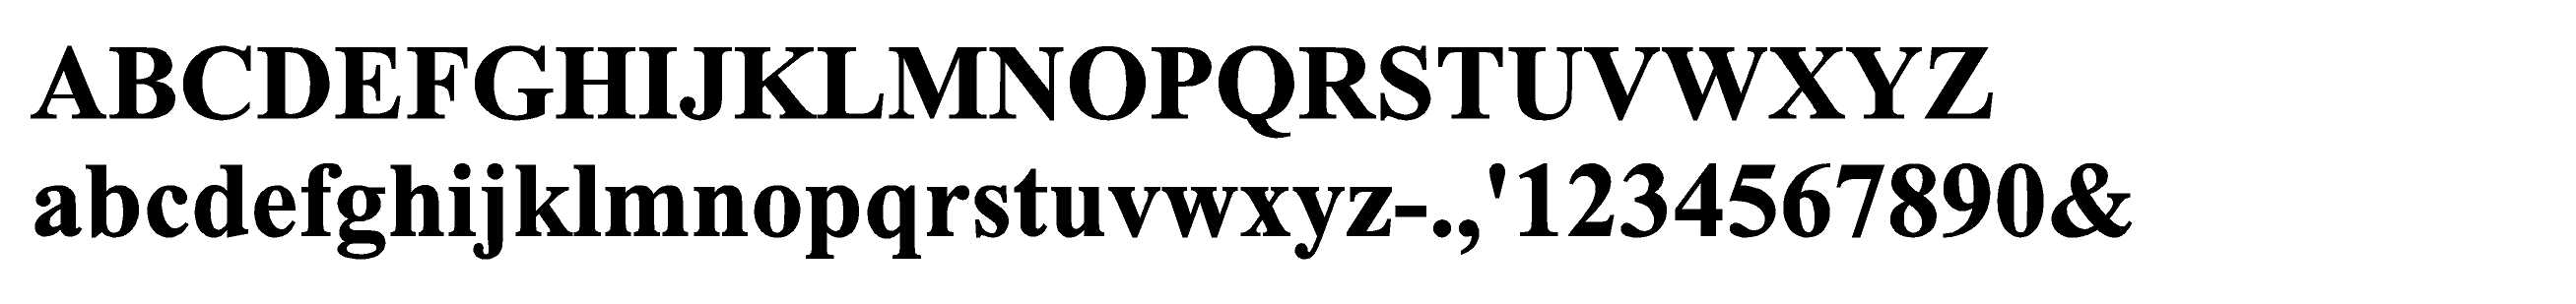 Time Bold Standard EZLit Type Style